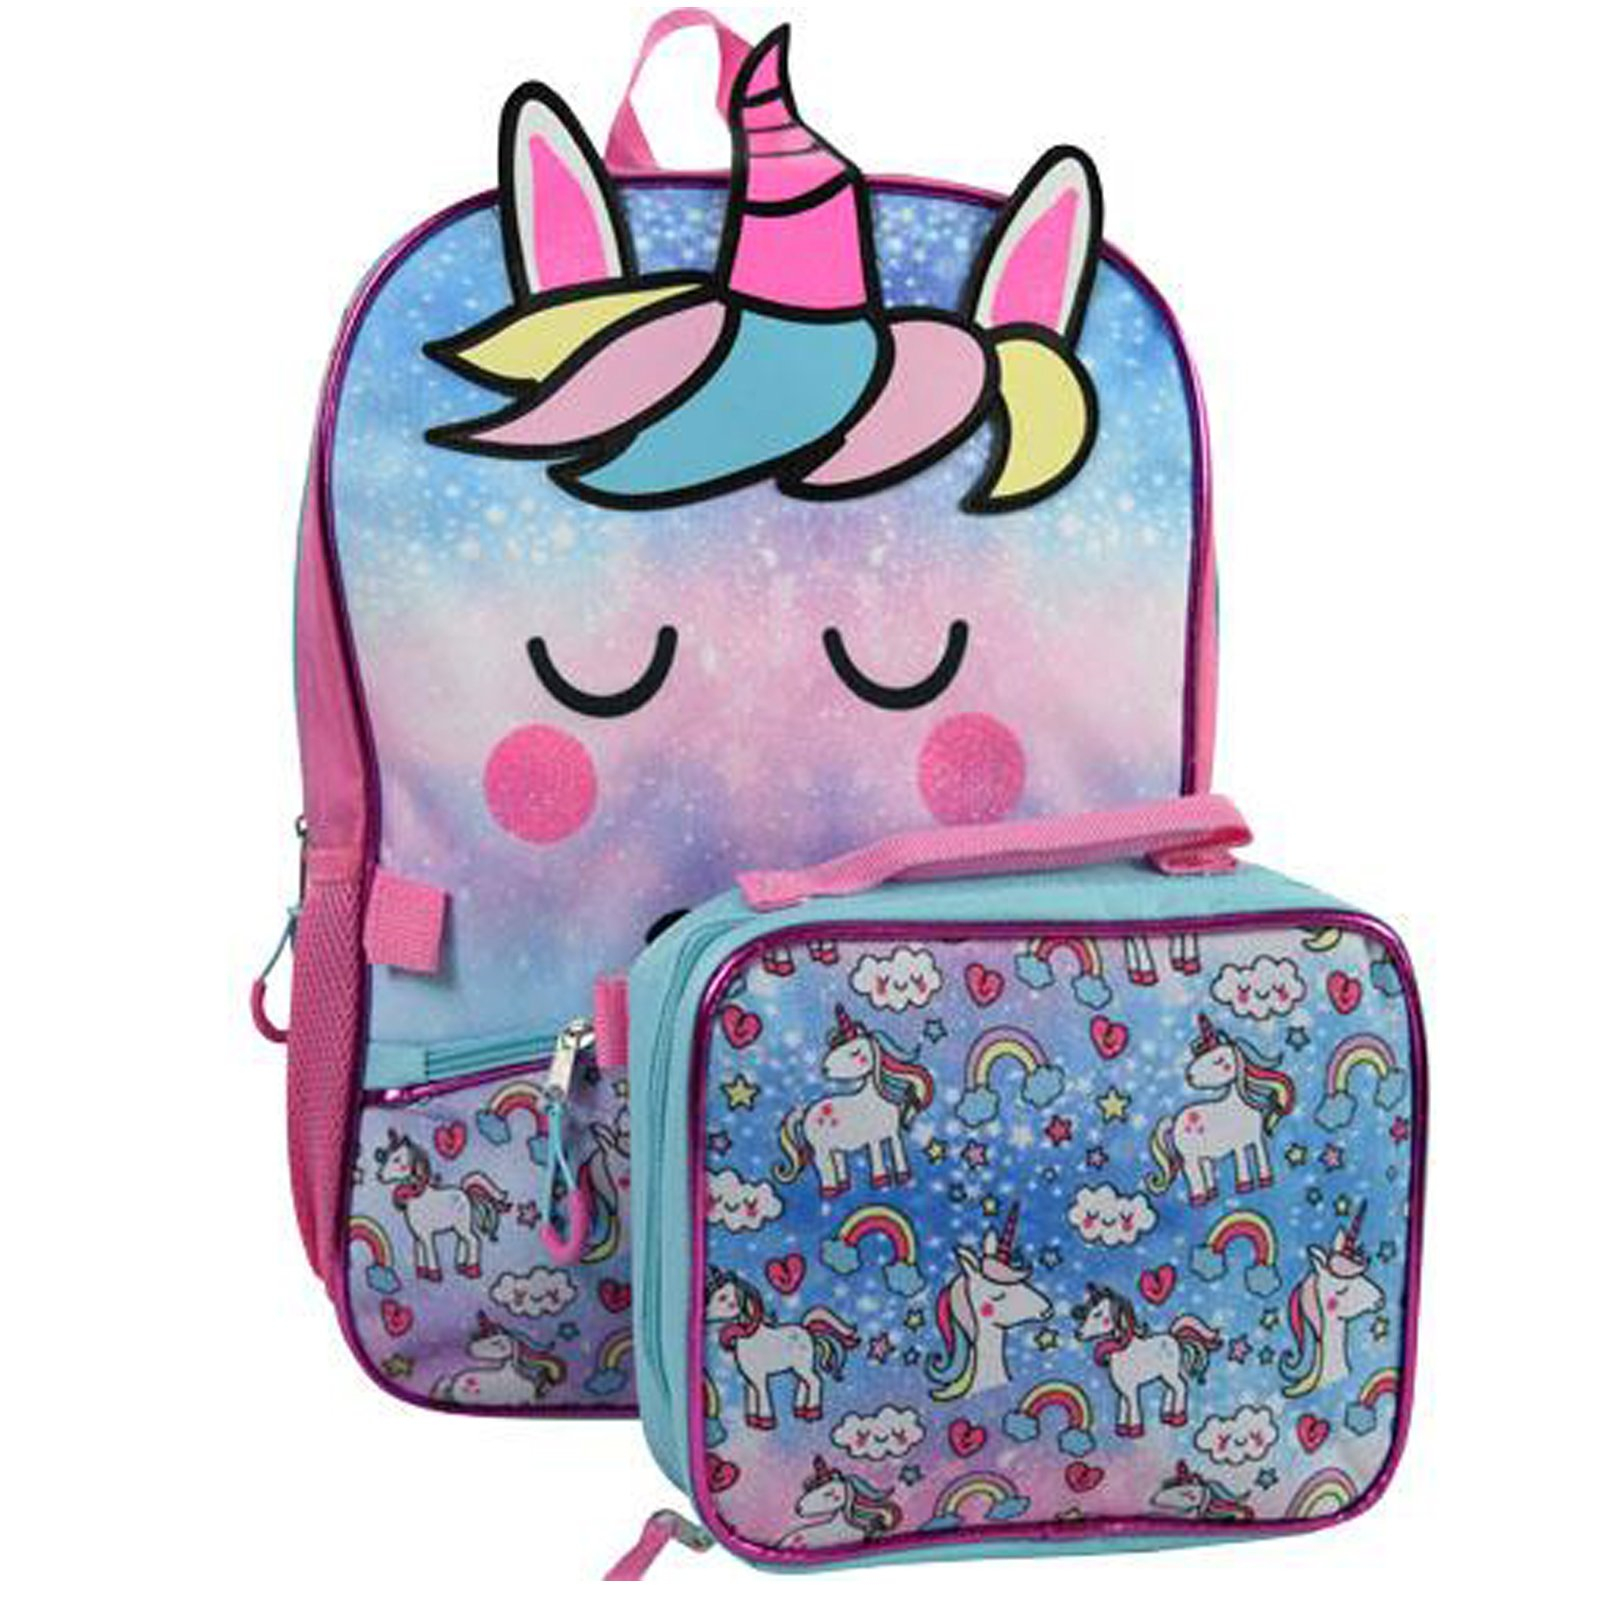 TychoTykes Unicorn Kids School Backpack with Lunch Bag Set Girls Travel Tote